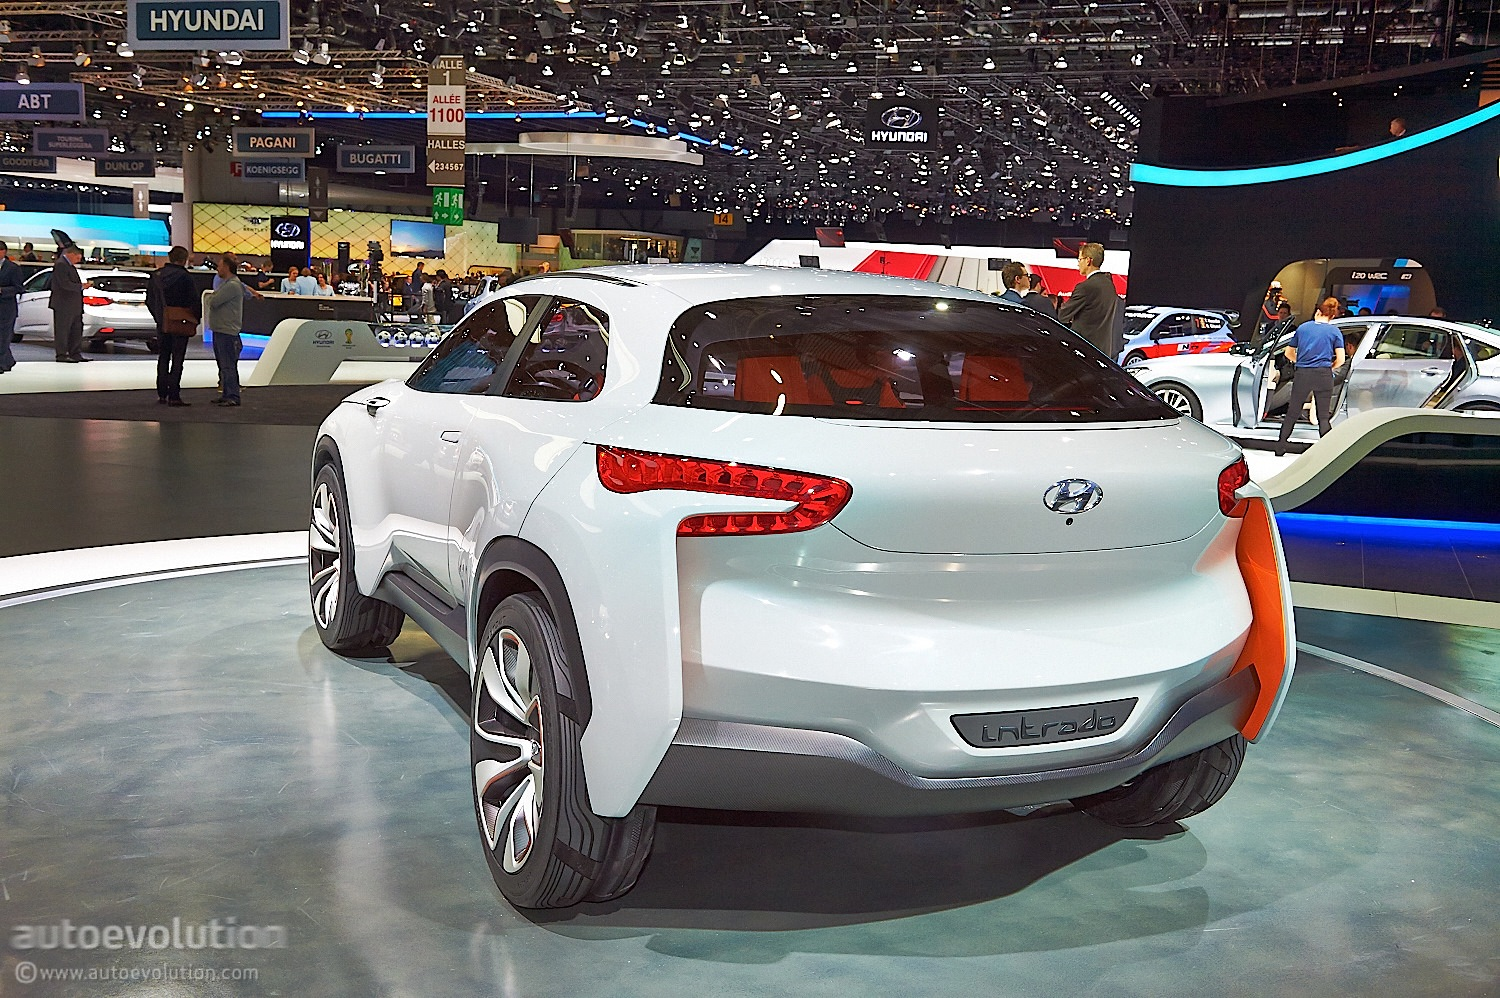 German Designed Hyundai Intrado Concept Hints At Future Crossover Suv Live Photos on 2017 Hyundai Elantra